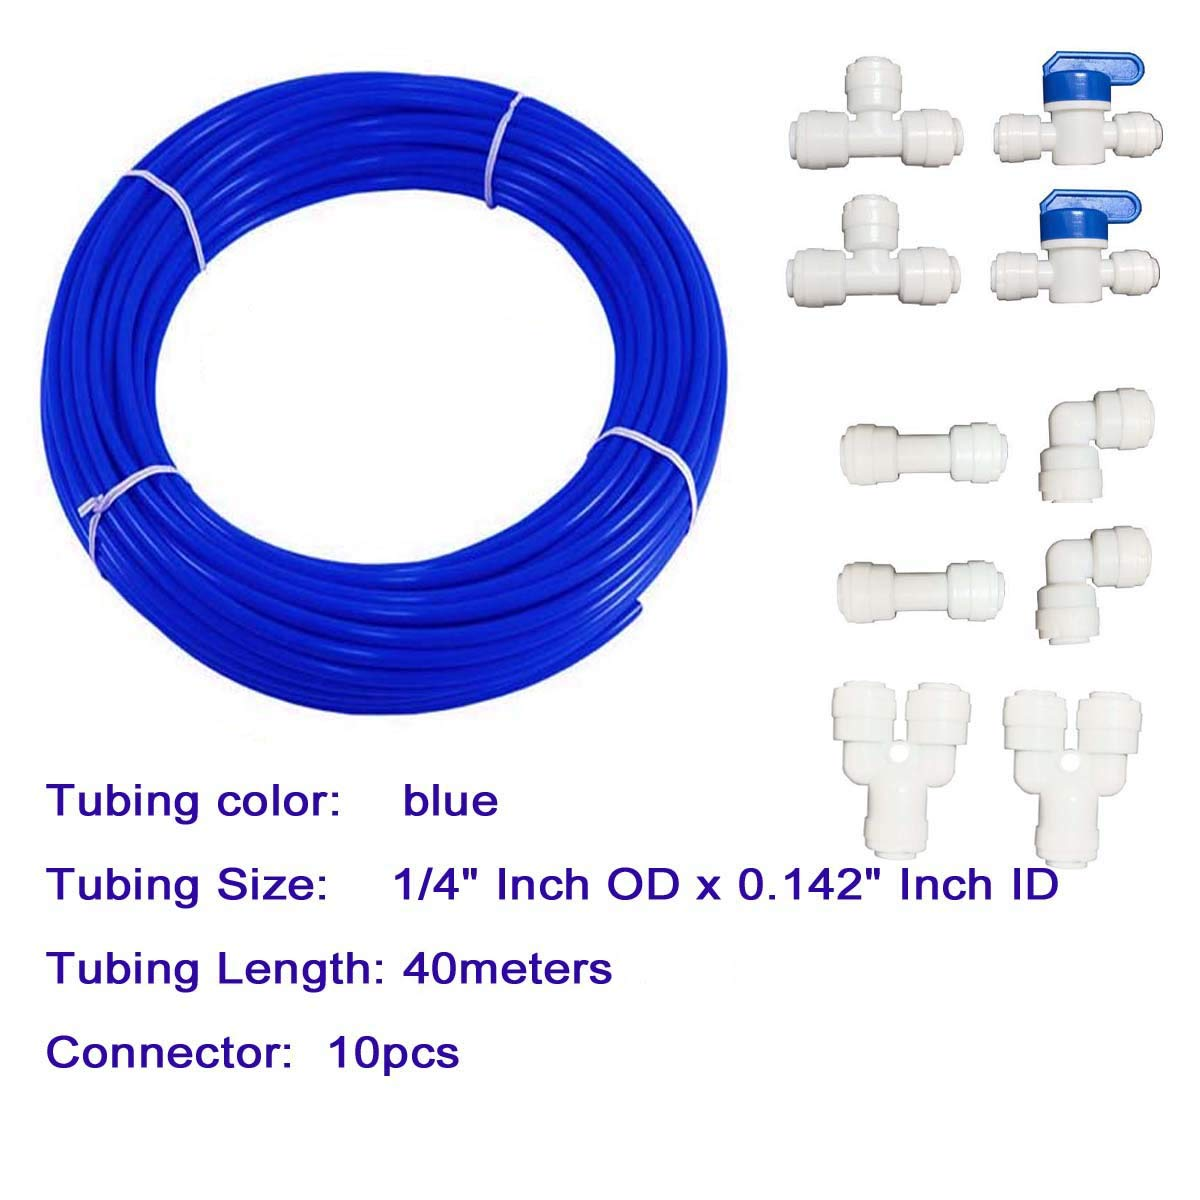 Hose Pipe for RO Water purifiers System,+quick connector 10pcs. tubing 10meters Malida 1//4 inch RO Water blue Tubing